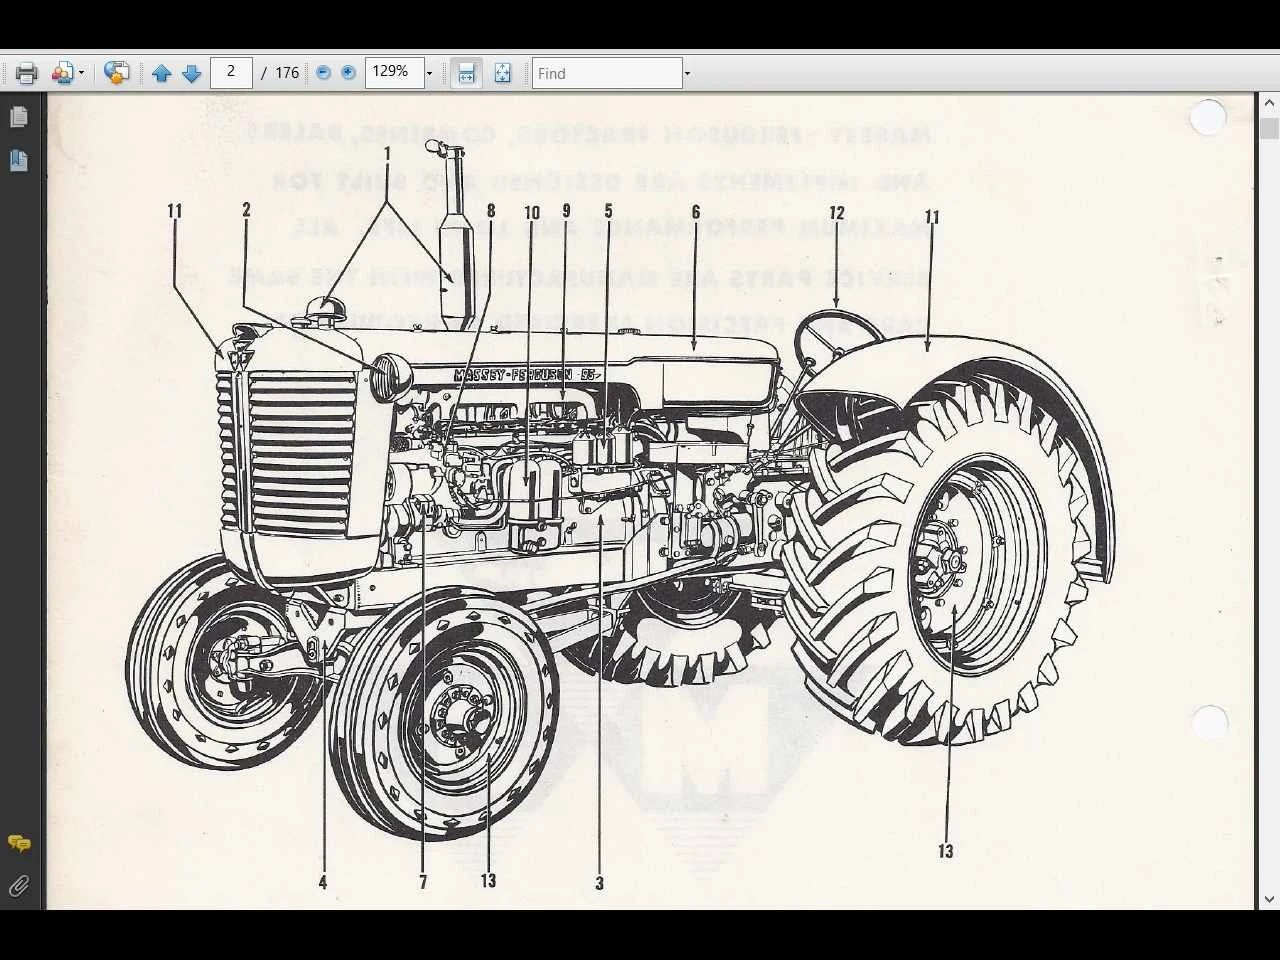 massey ferguson 135 parts diagram 96 mustang gt fuse mf135 manual 160pg with mf tractor